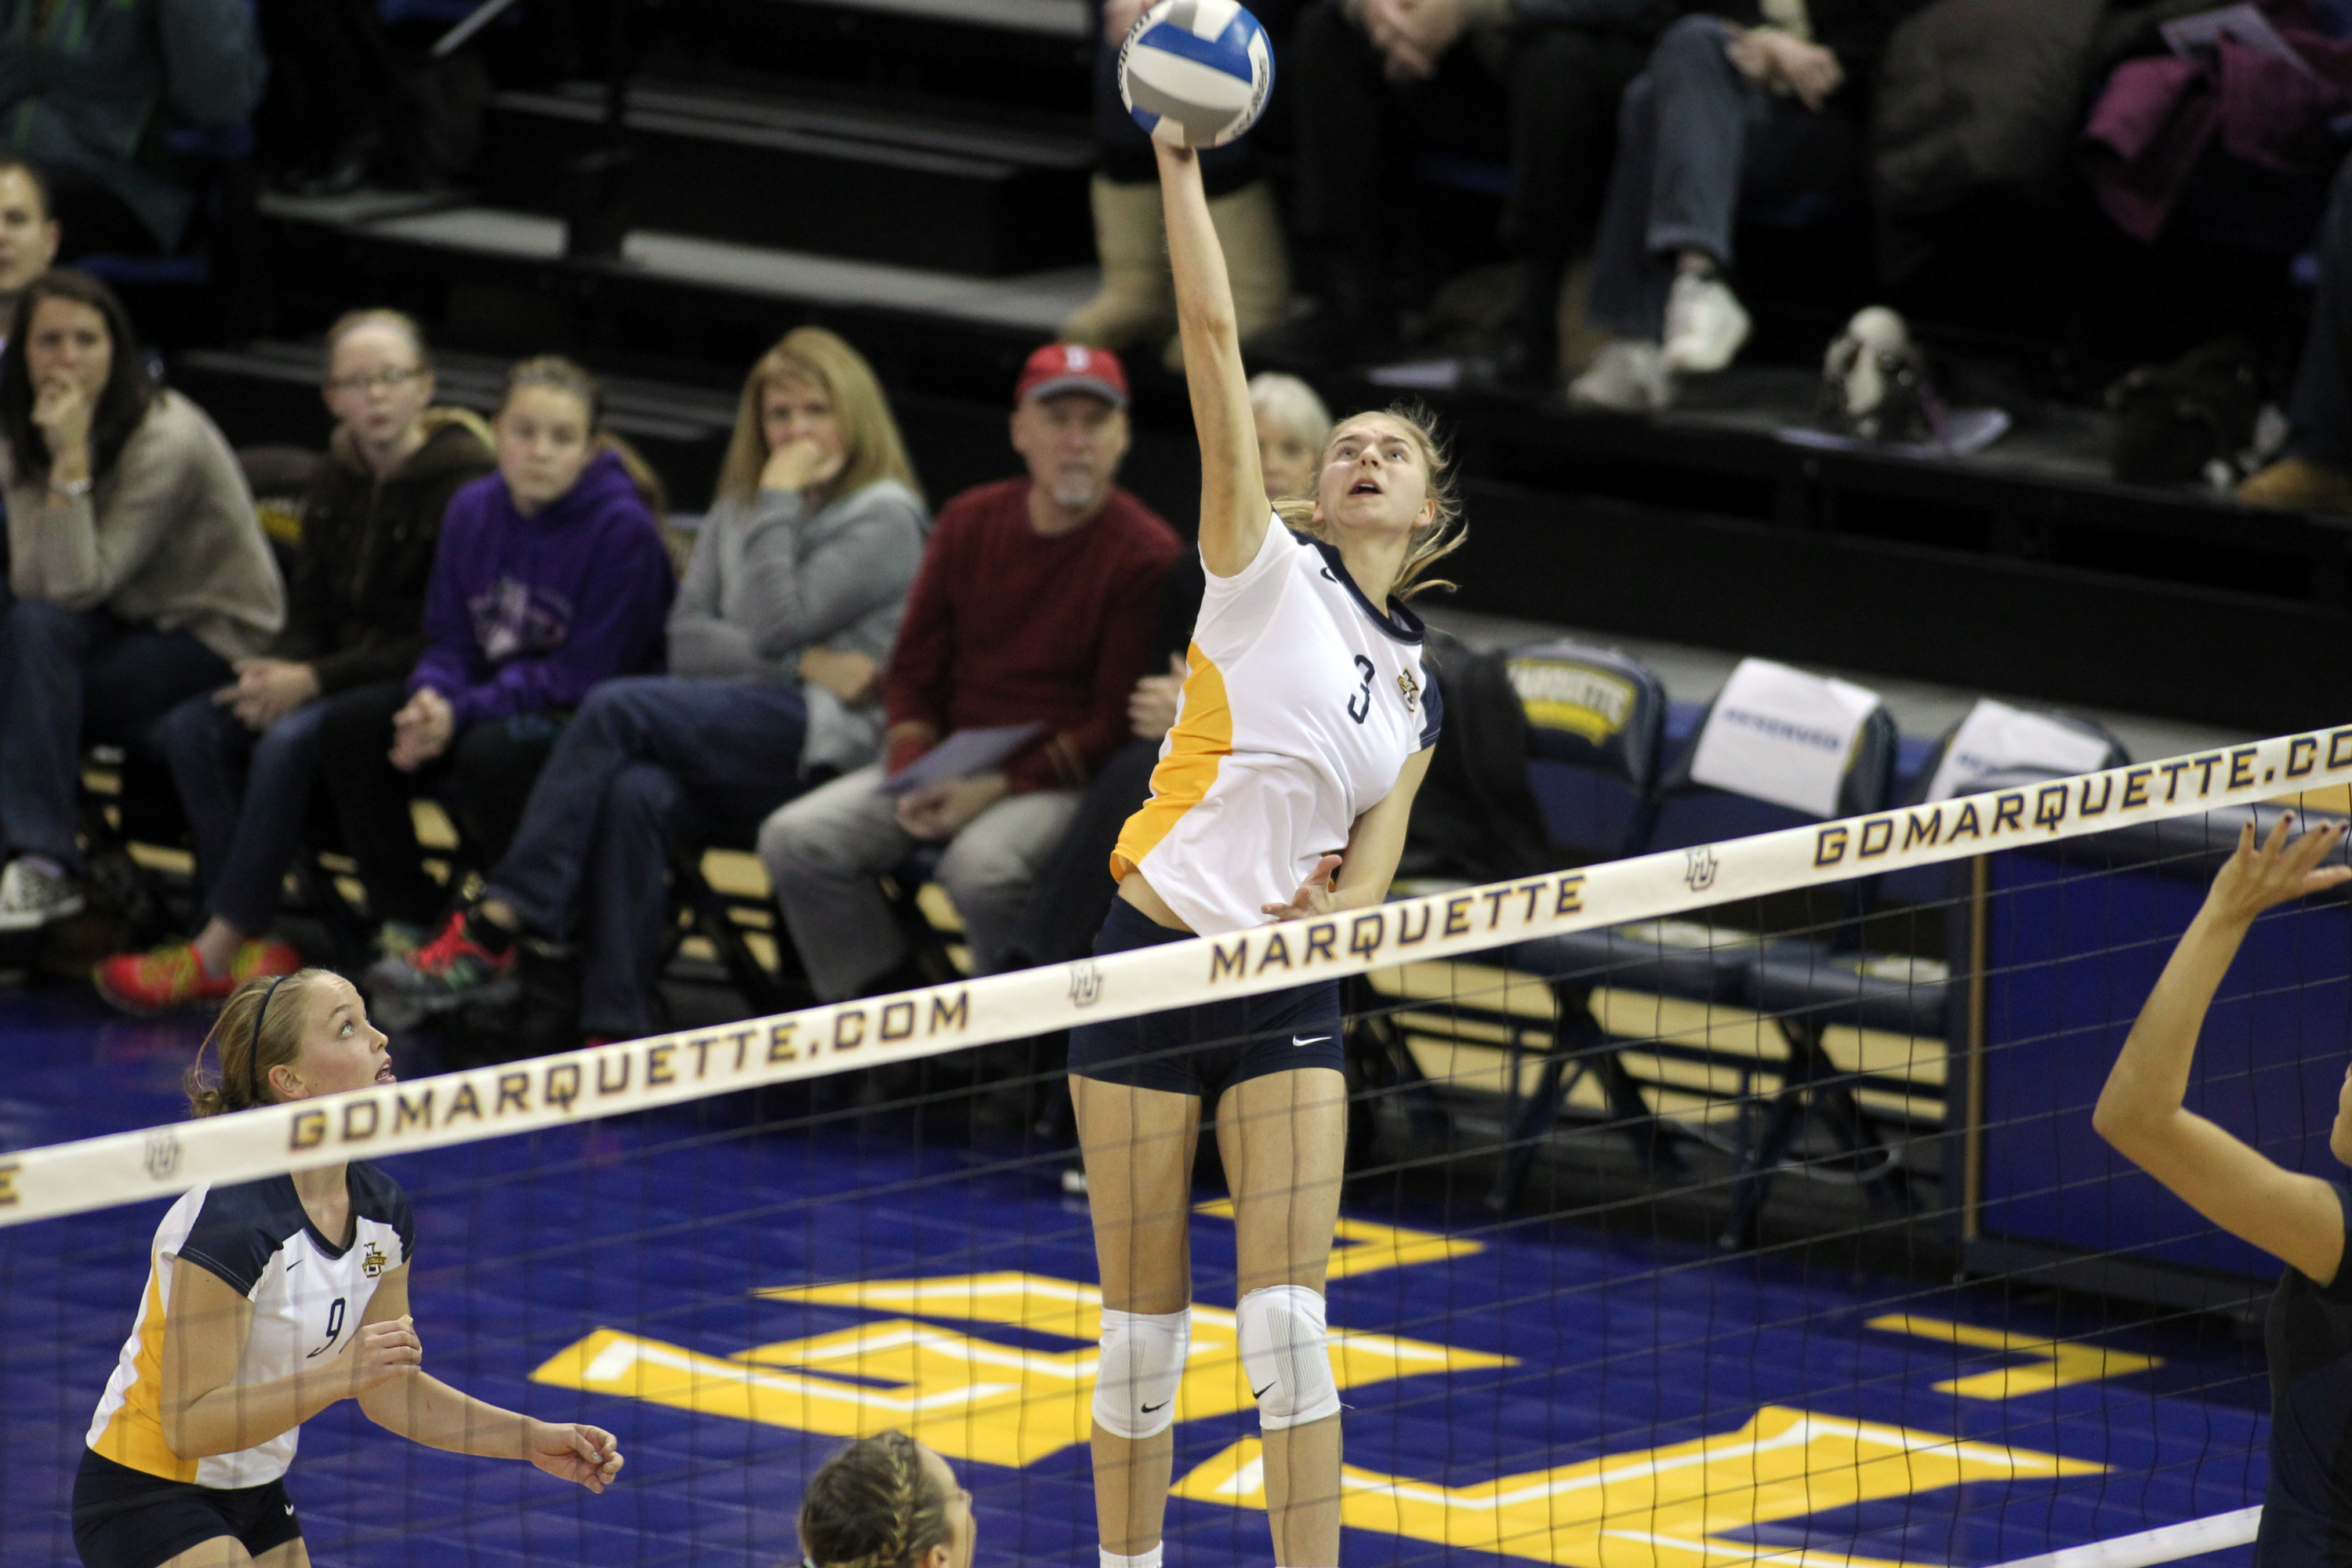 Nele Barber posted 18 kills and hit .500 as MU advanced to its second straight title contest.